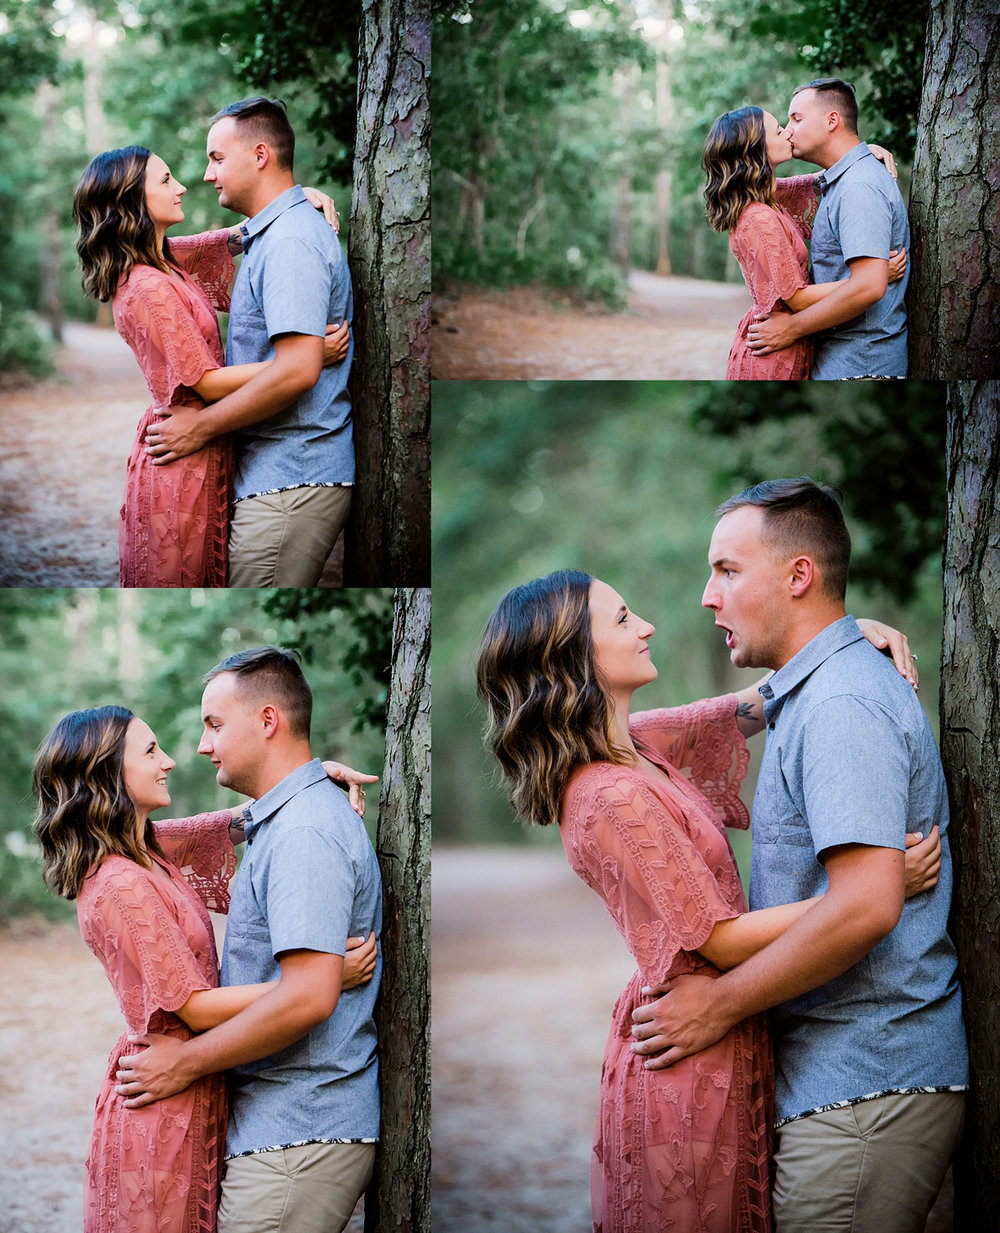 candid-lifestyle-engagement-photos-first-landing-virginia-beach-session-melissa-bliss-photography.jpg